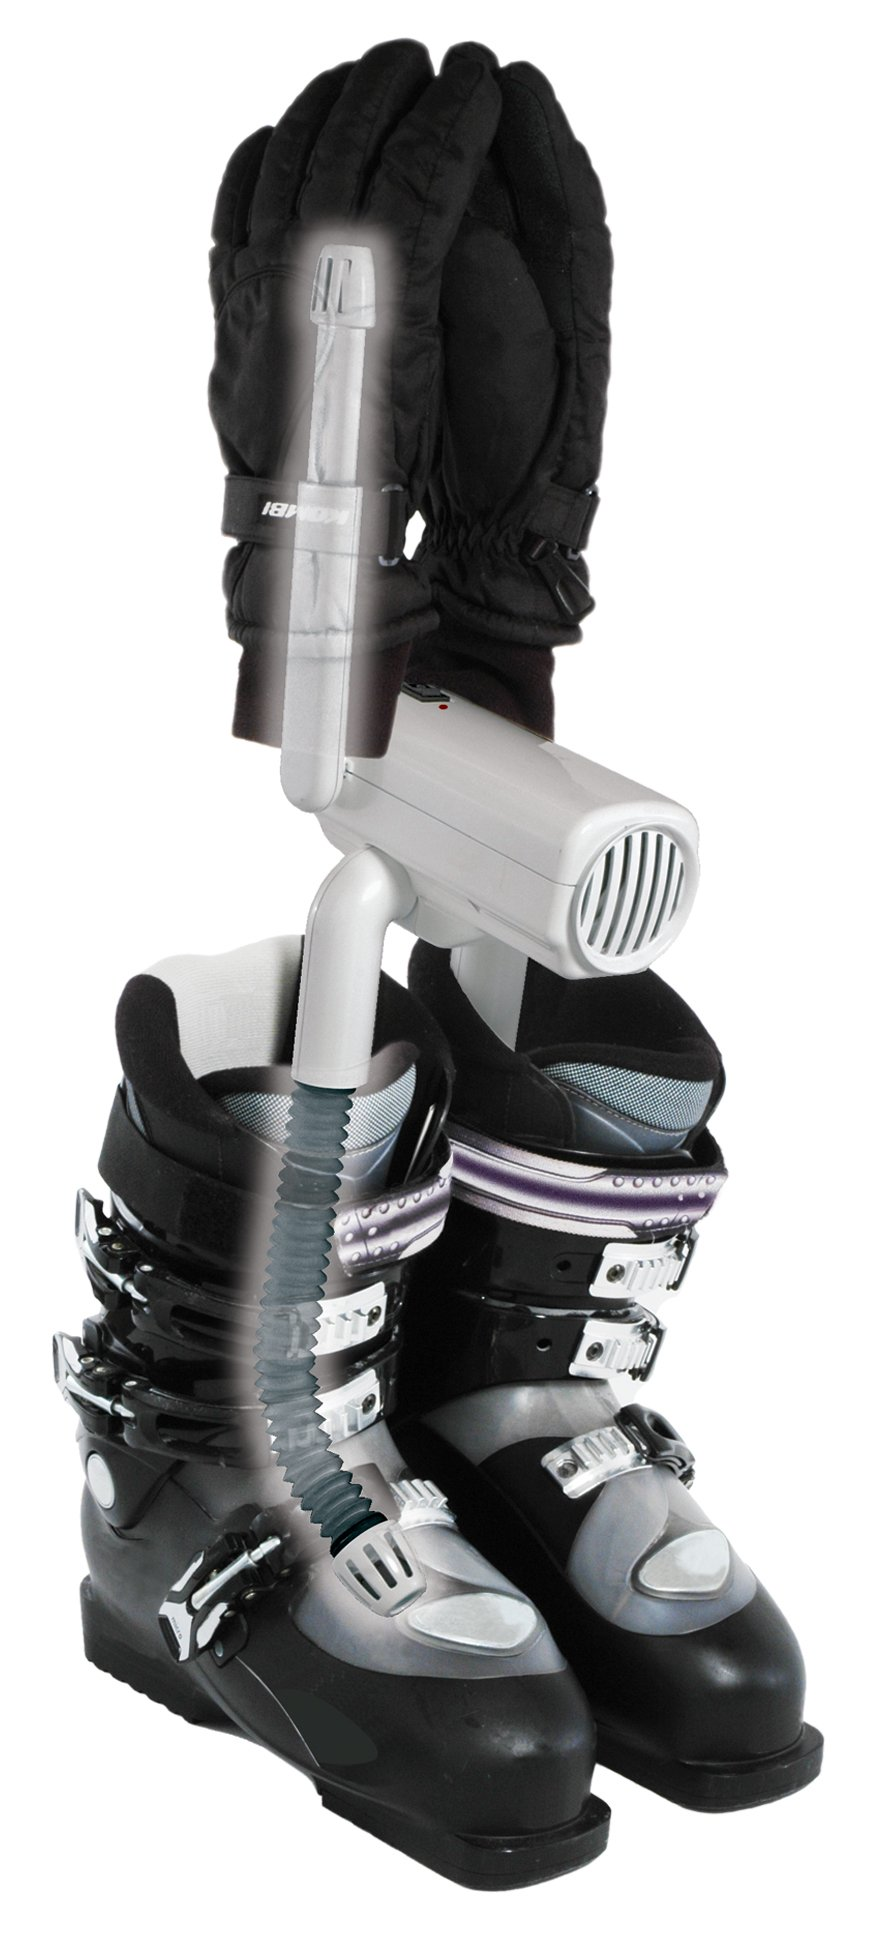 Caframo Limited Work'n Play Portable Boot & Glove Boot Dryer